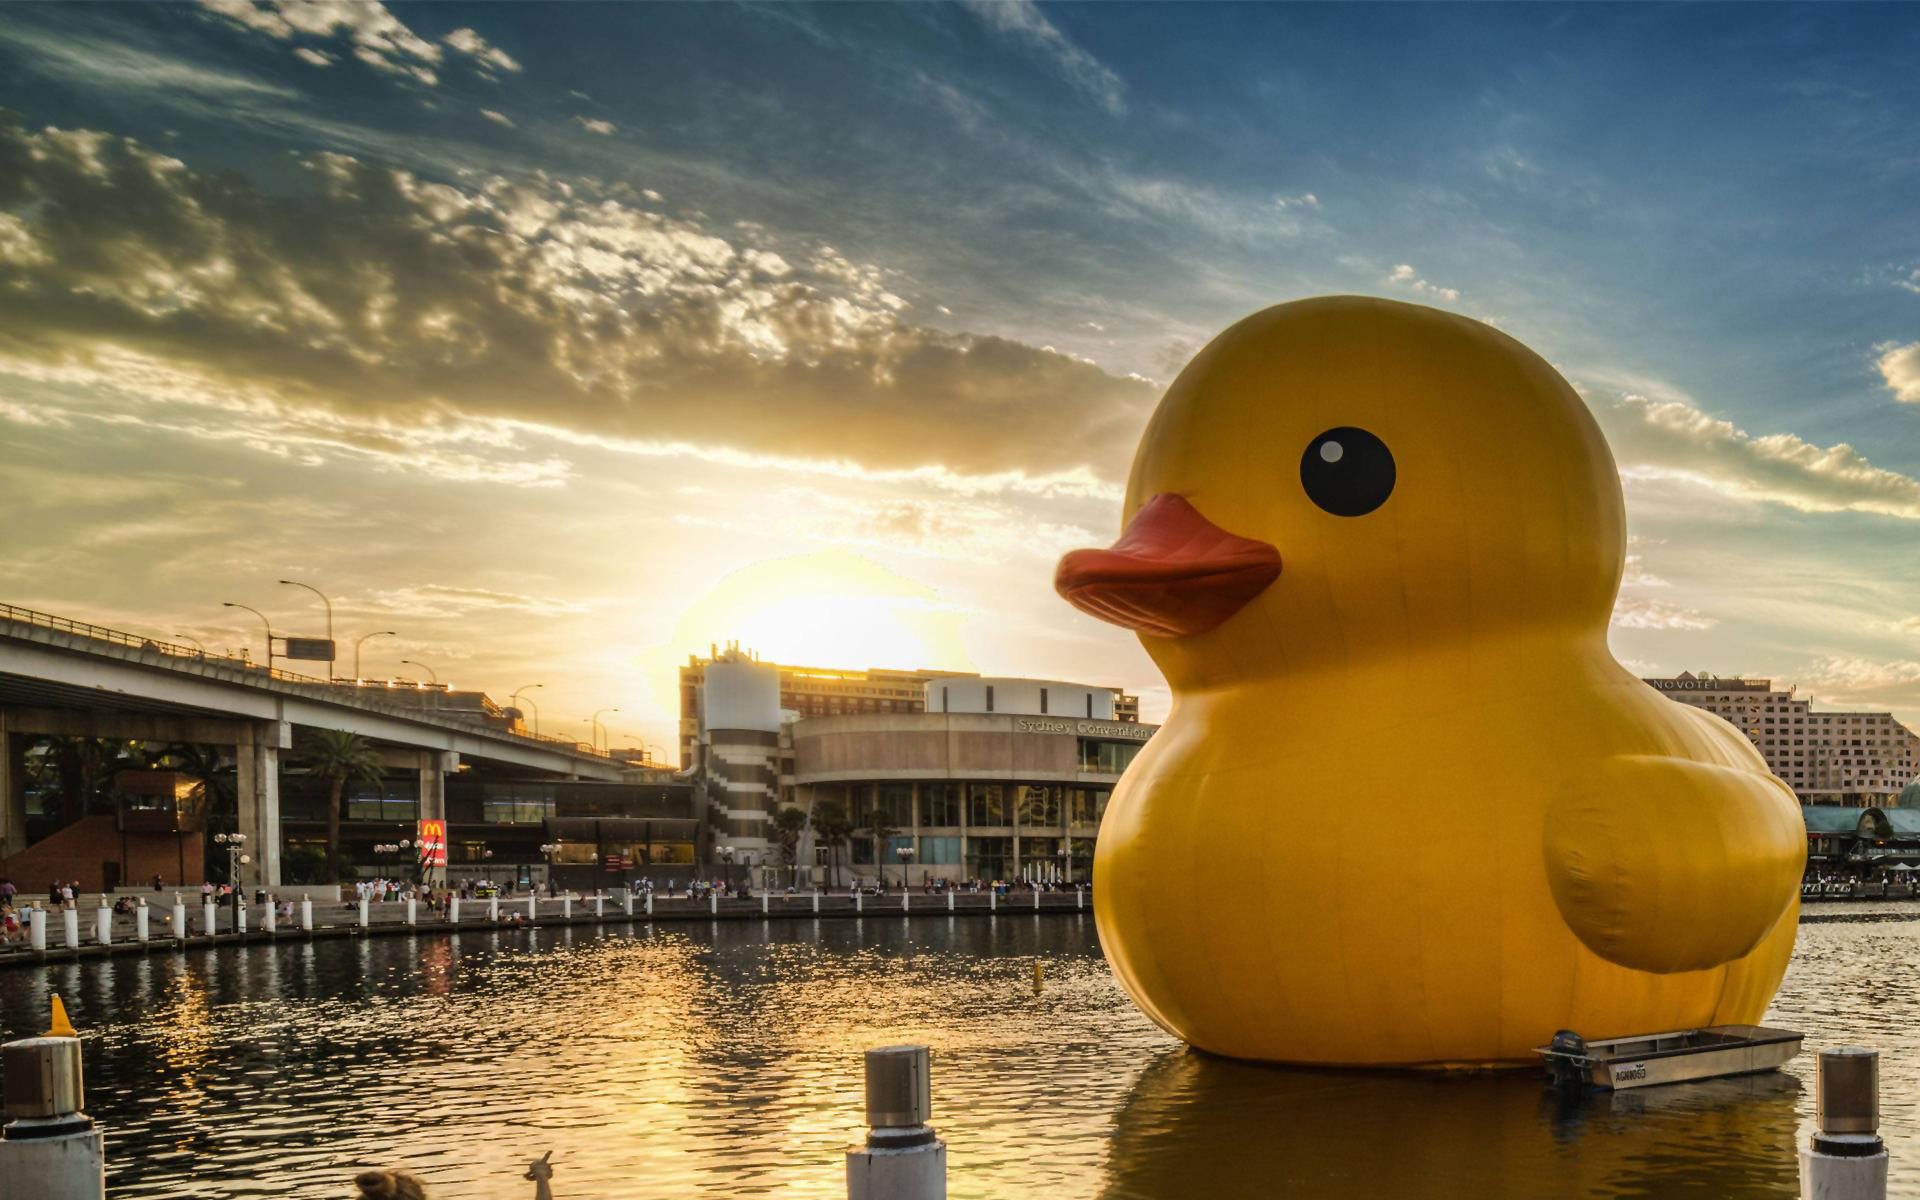 Rubber duck city